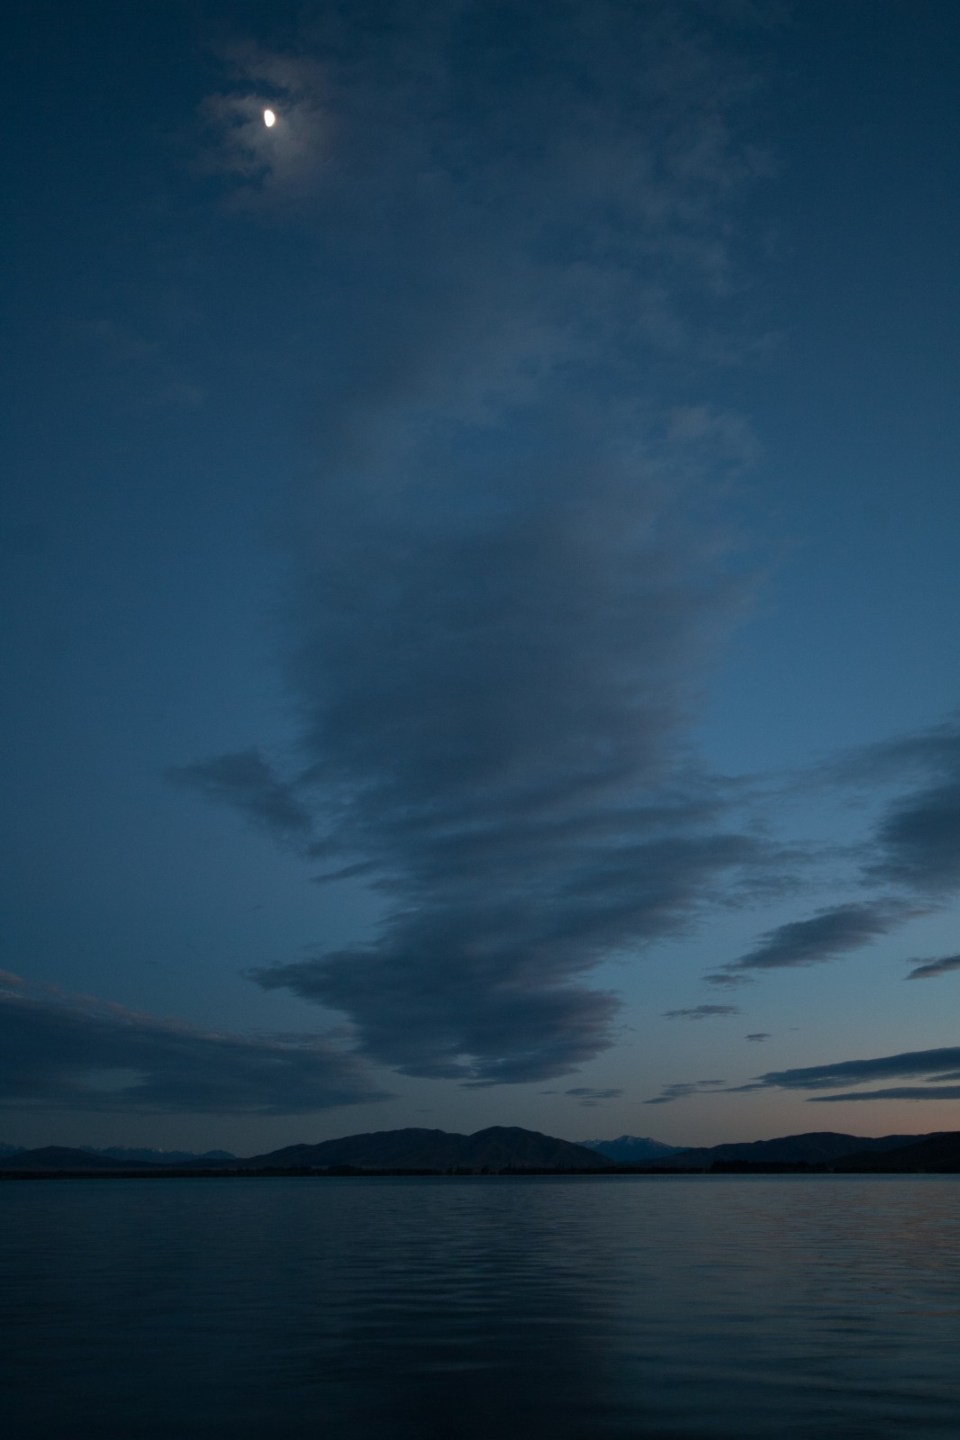 just before sunrise, view of lake and clouds with moon visible top of frame